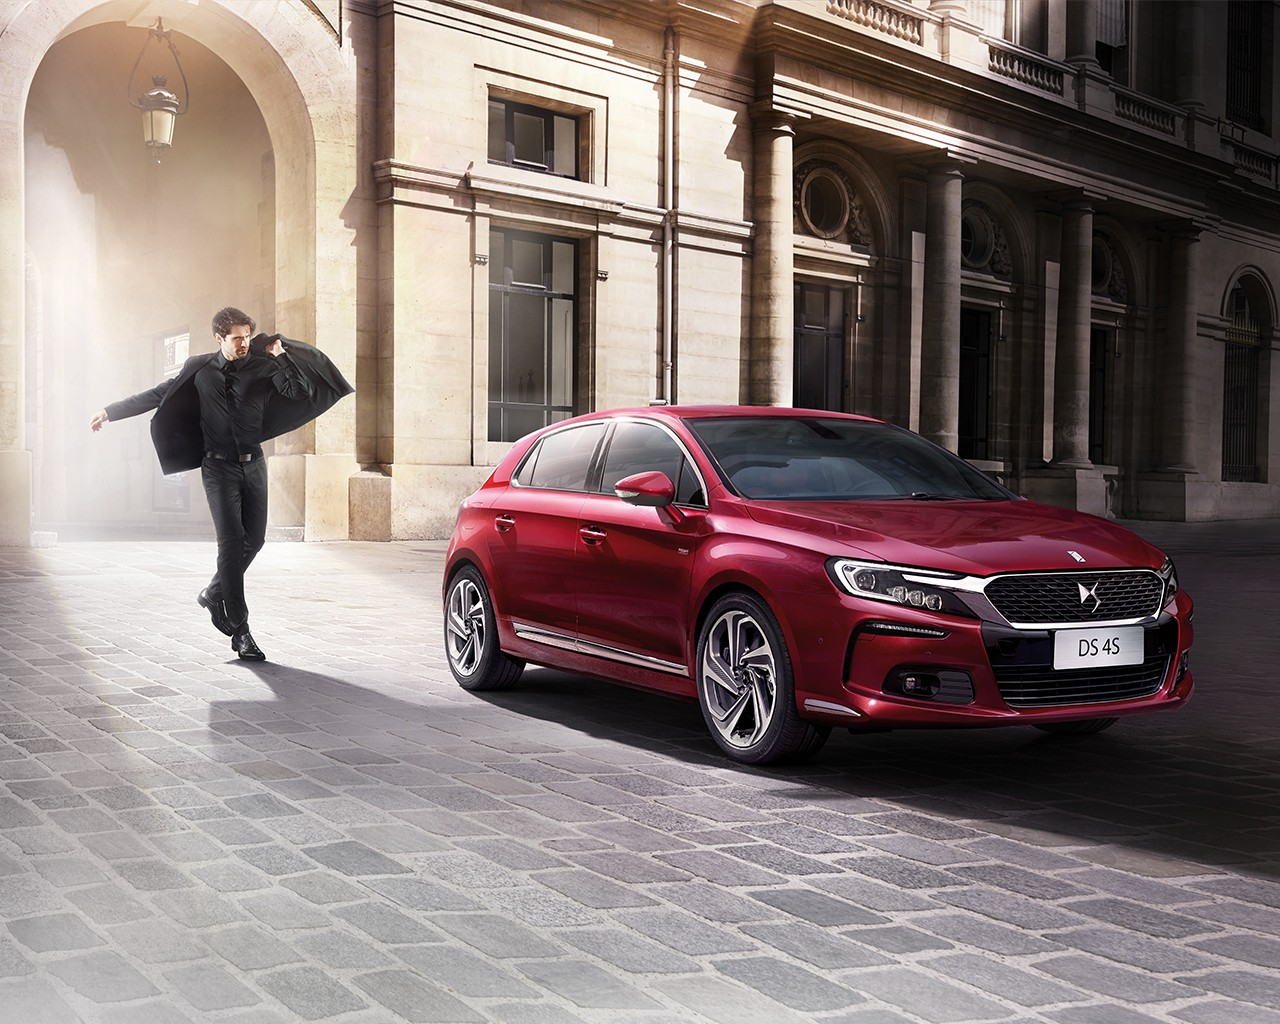 2017-ds-4s-launched-in-bejing-only-available-in-china_1